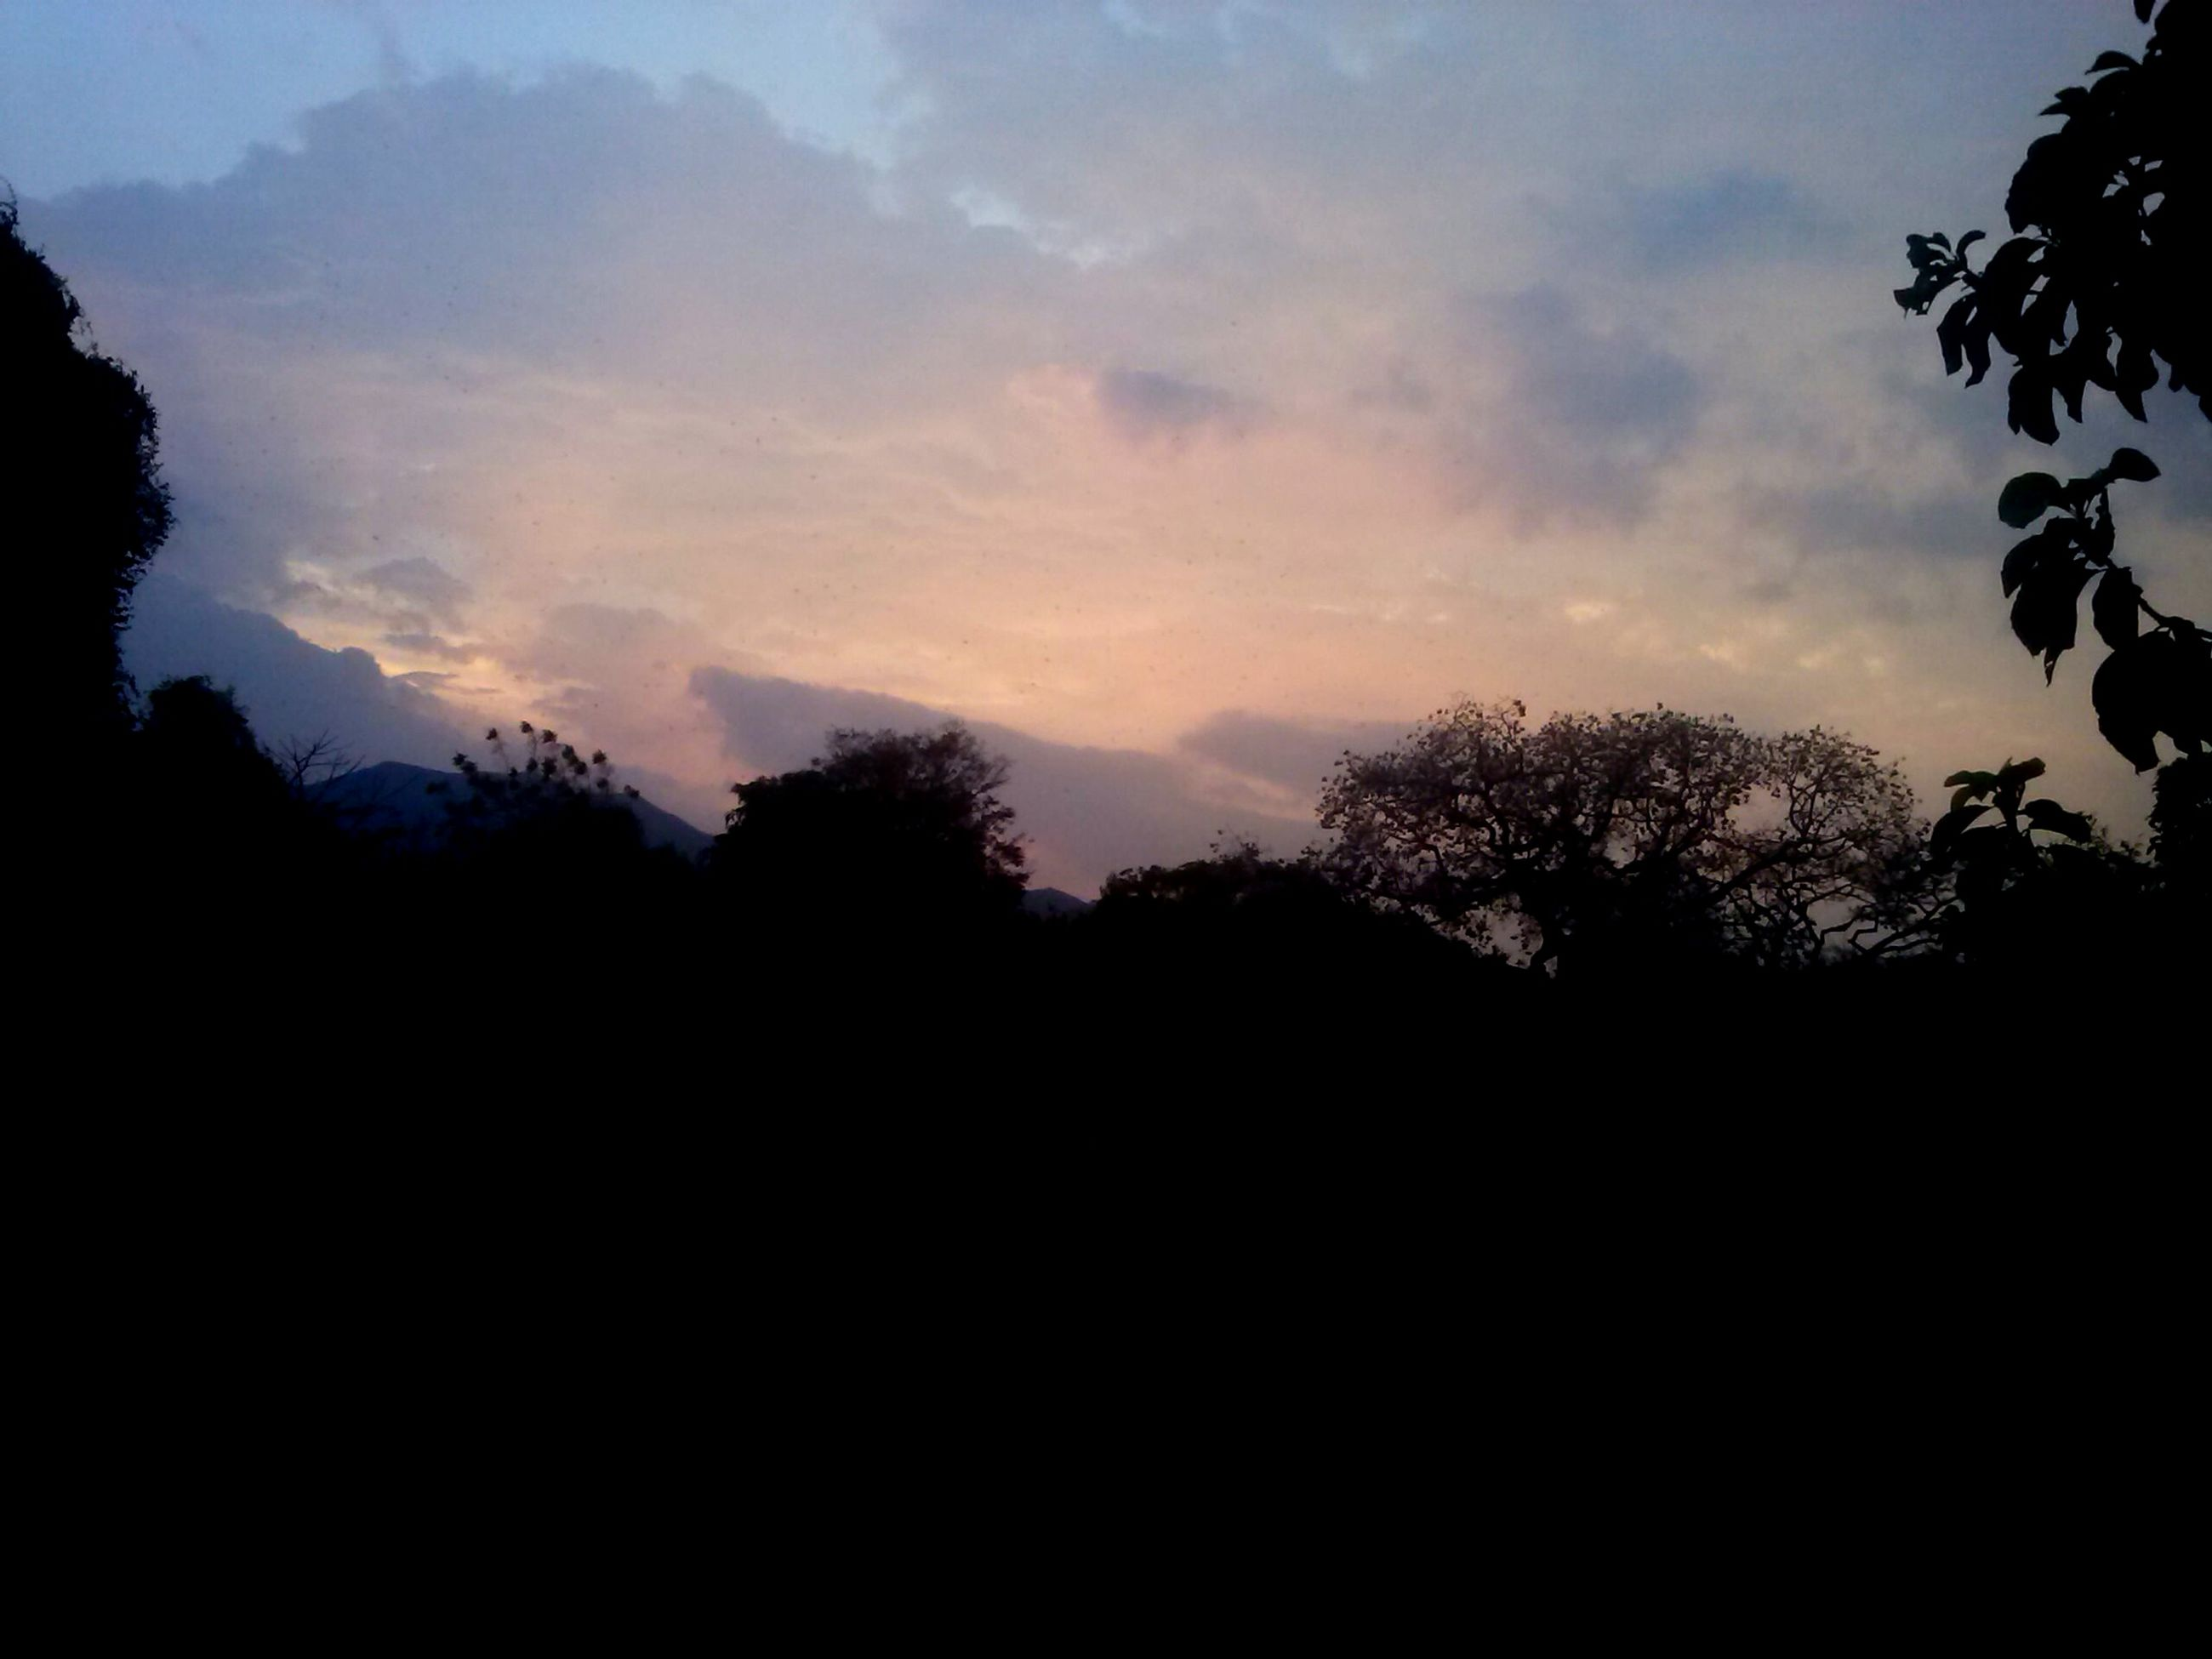 silhouette, tree, sky, tranquility, sunset, tranquil scene, scenics, beauty in nature, nature, dark, cloud - sky, dusk, outline, low angle view, idyllic, landscape, cloud, outdoors, growth, no people